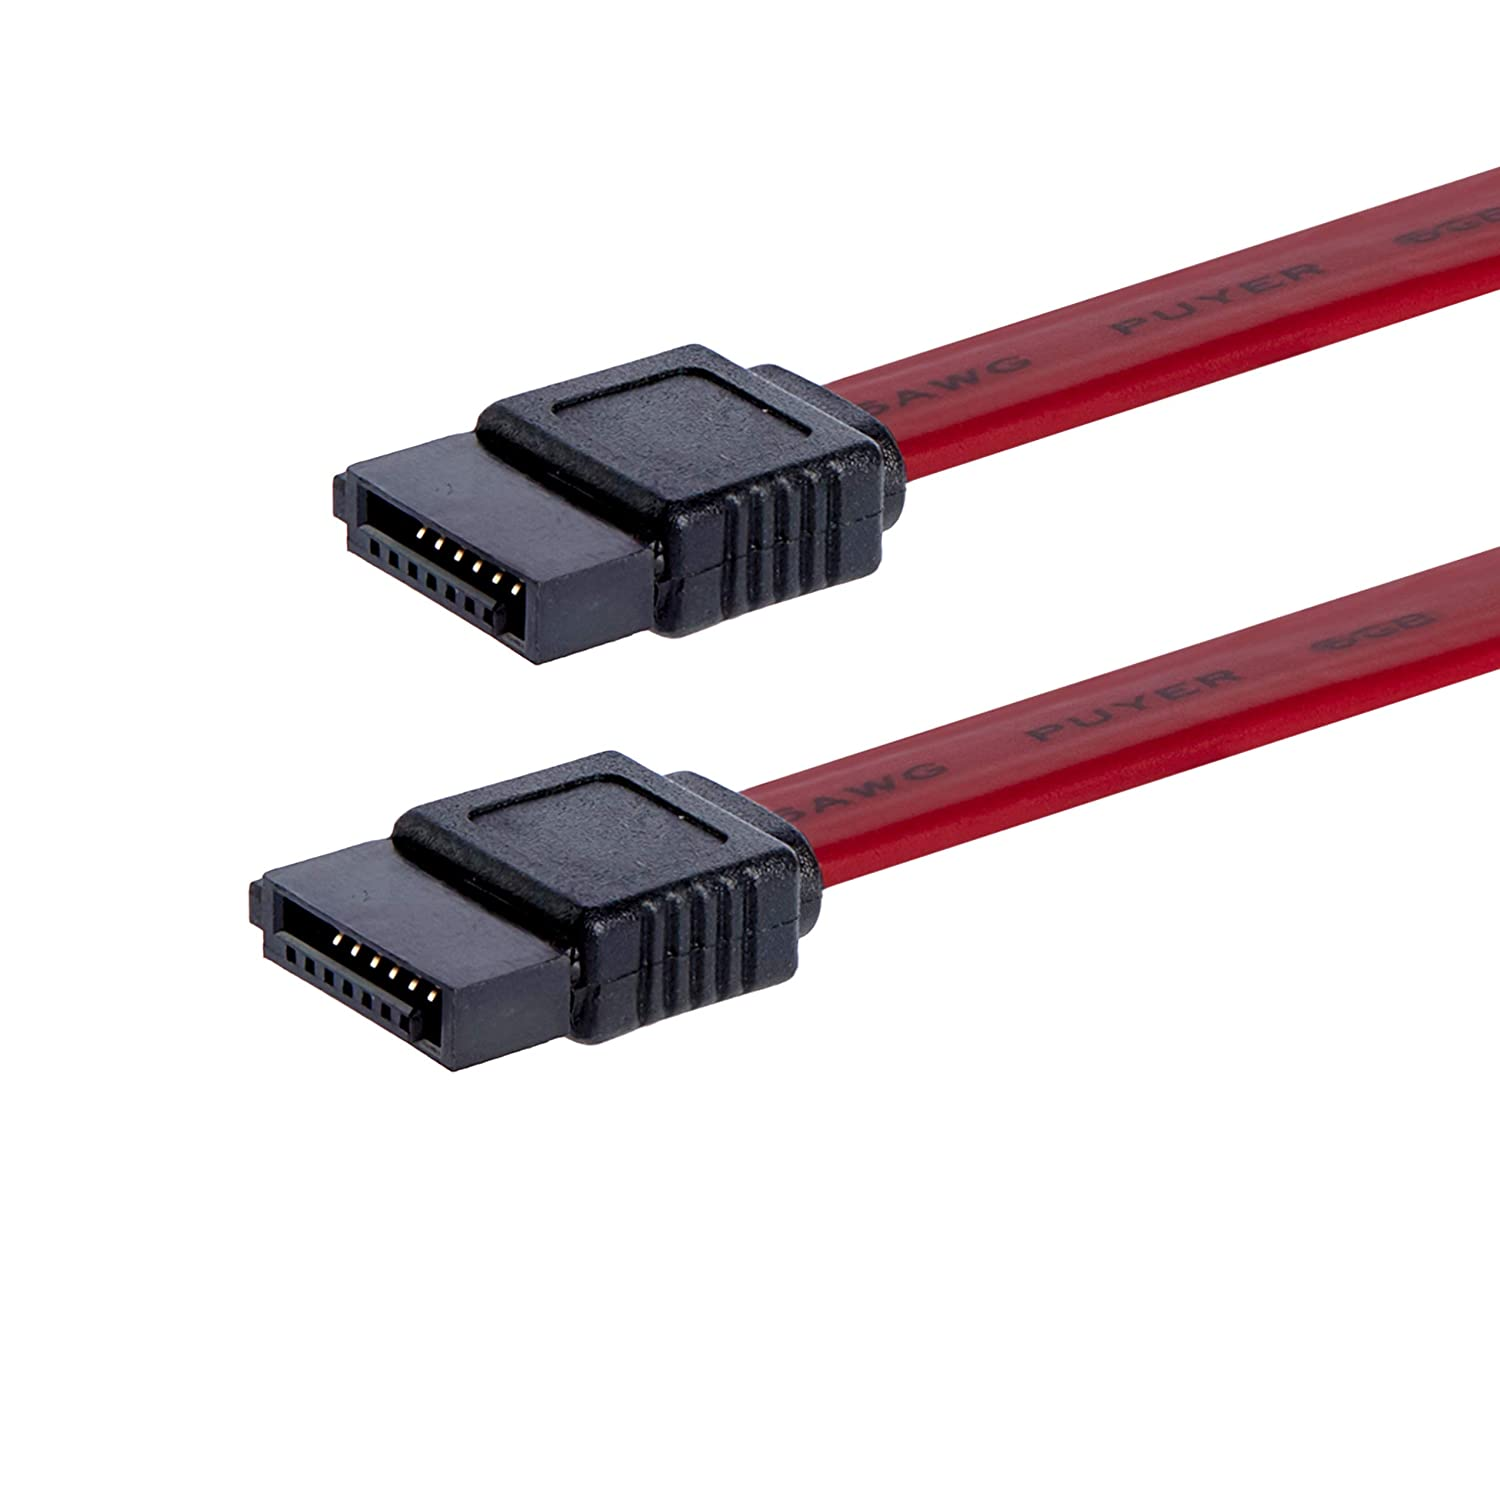 Pay attention to the SATA connector